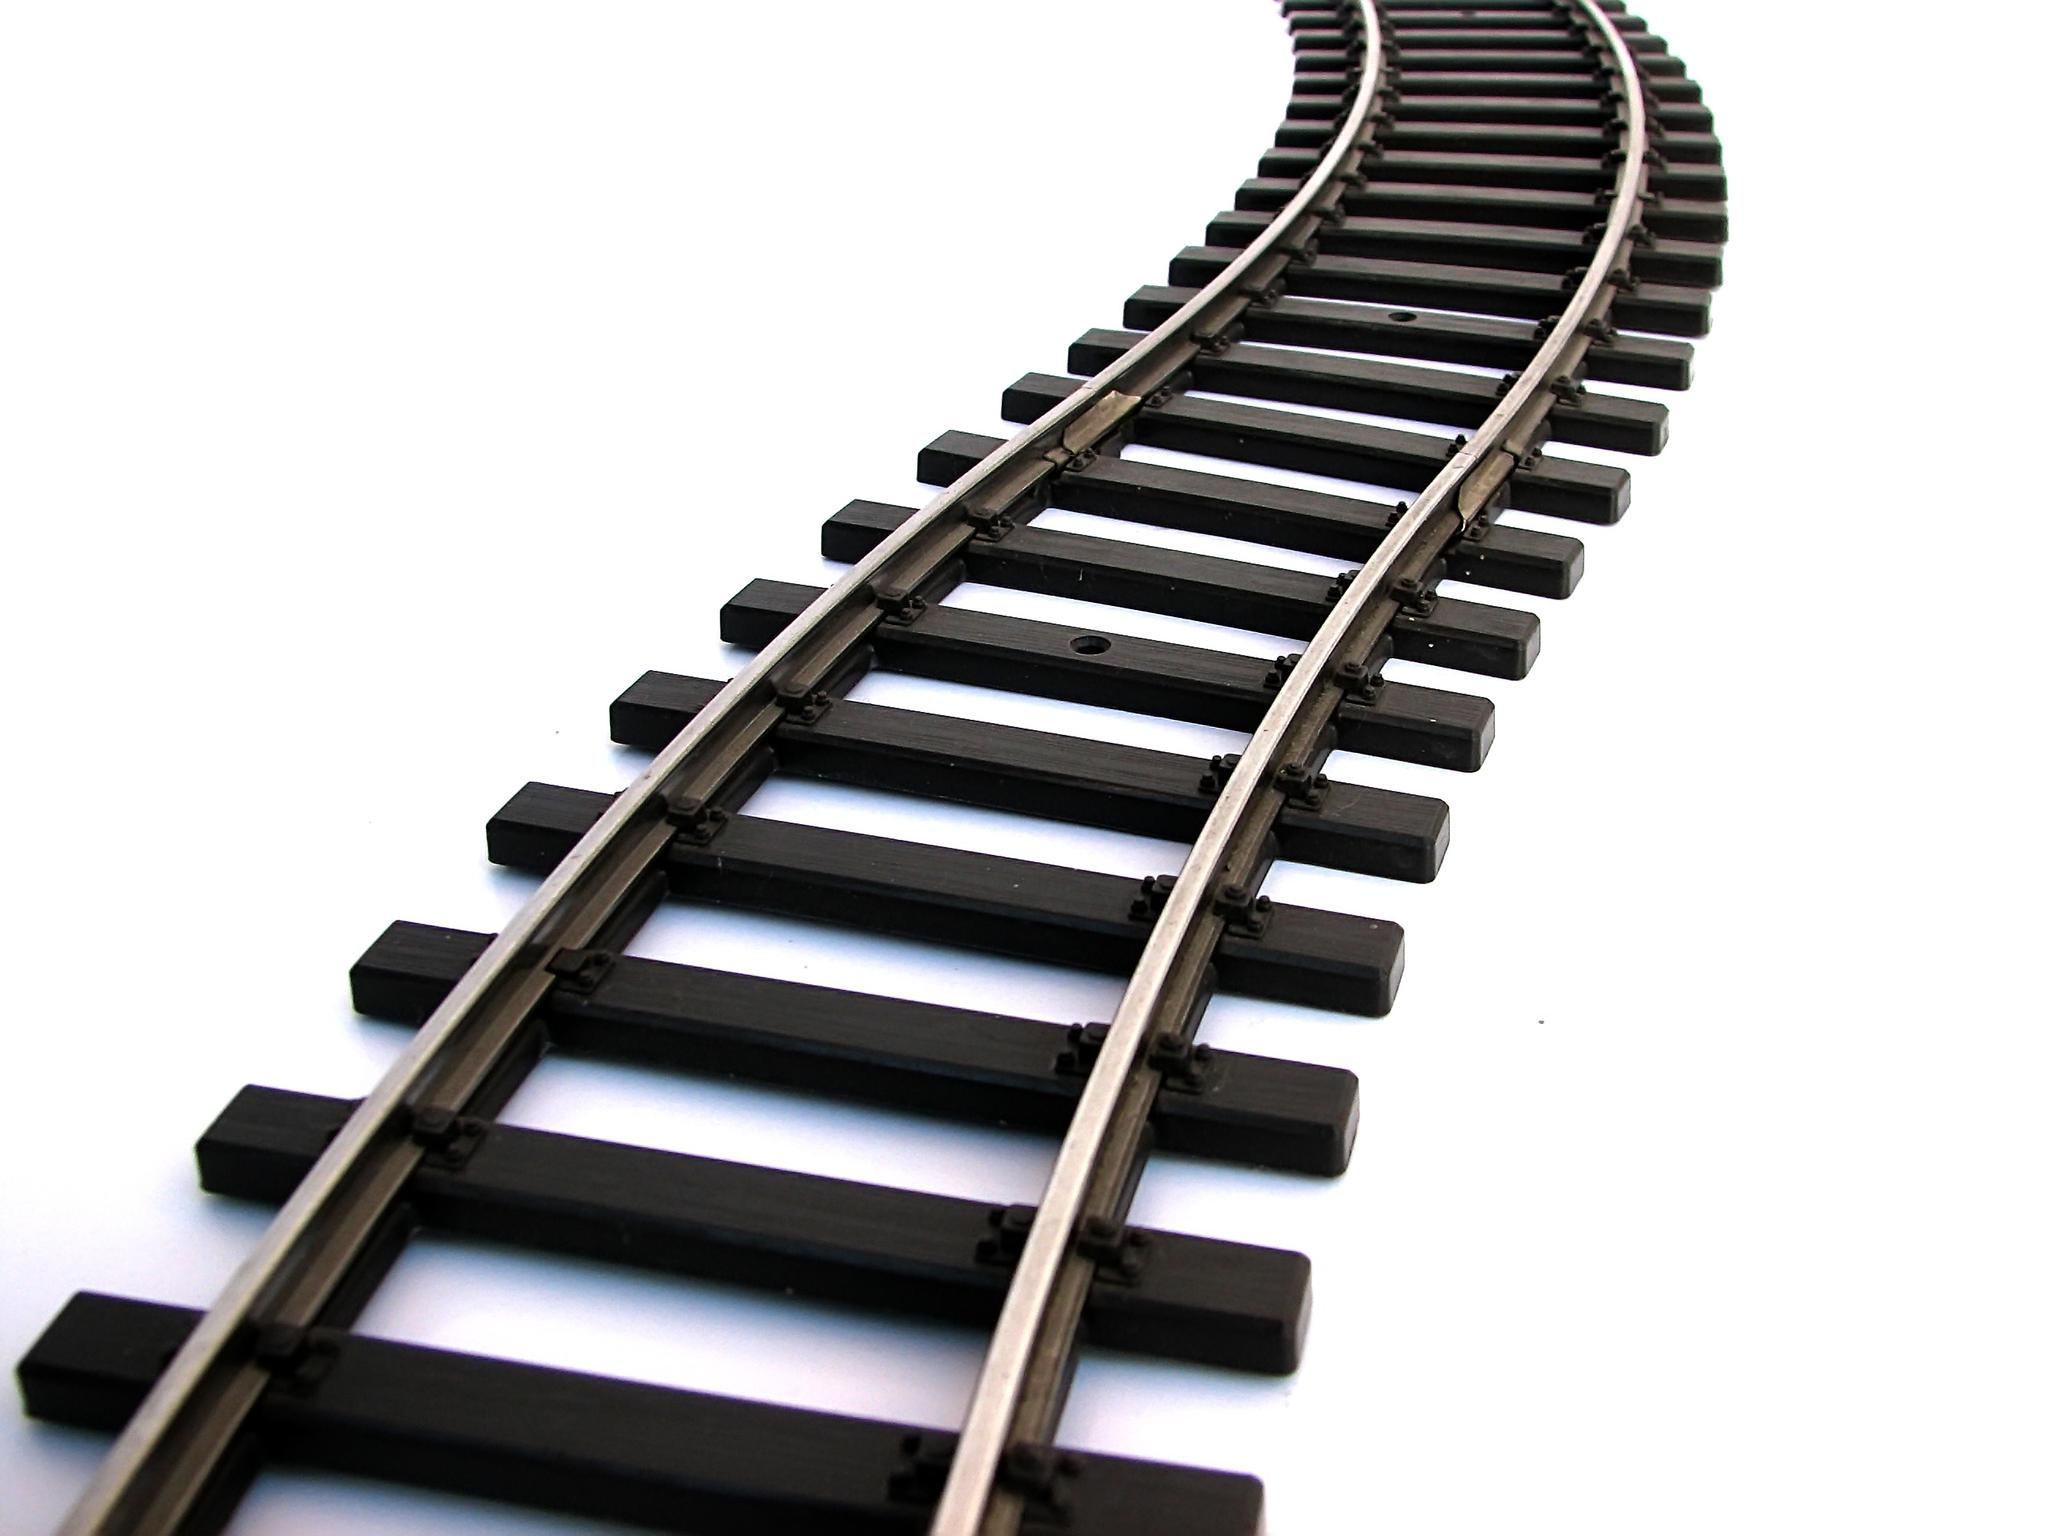 Train tracks clipart - Clipground